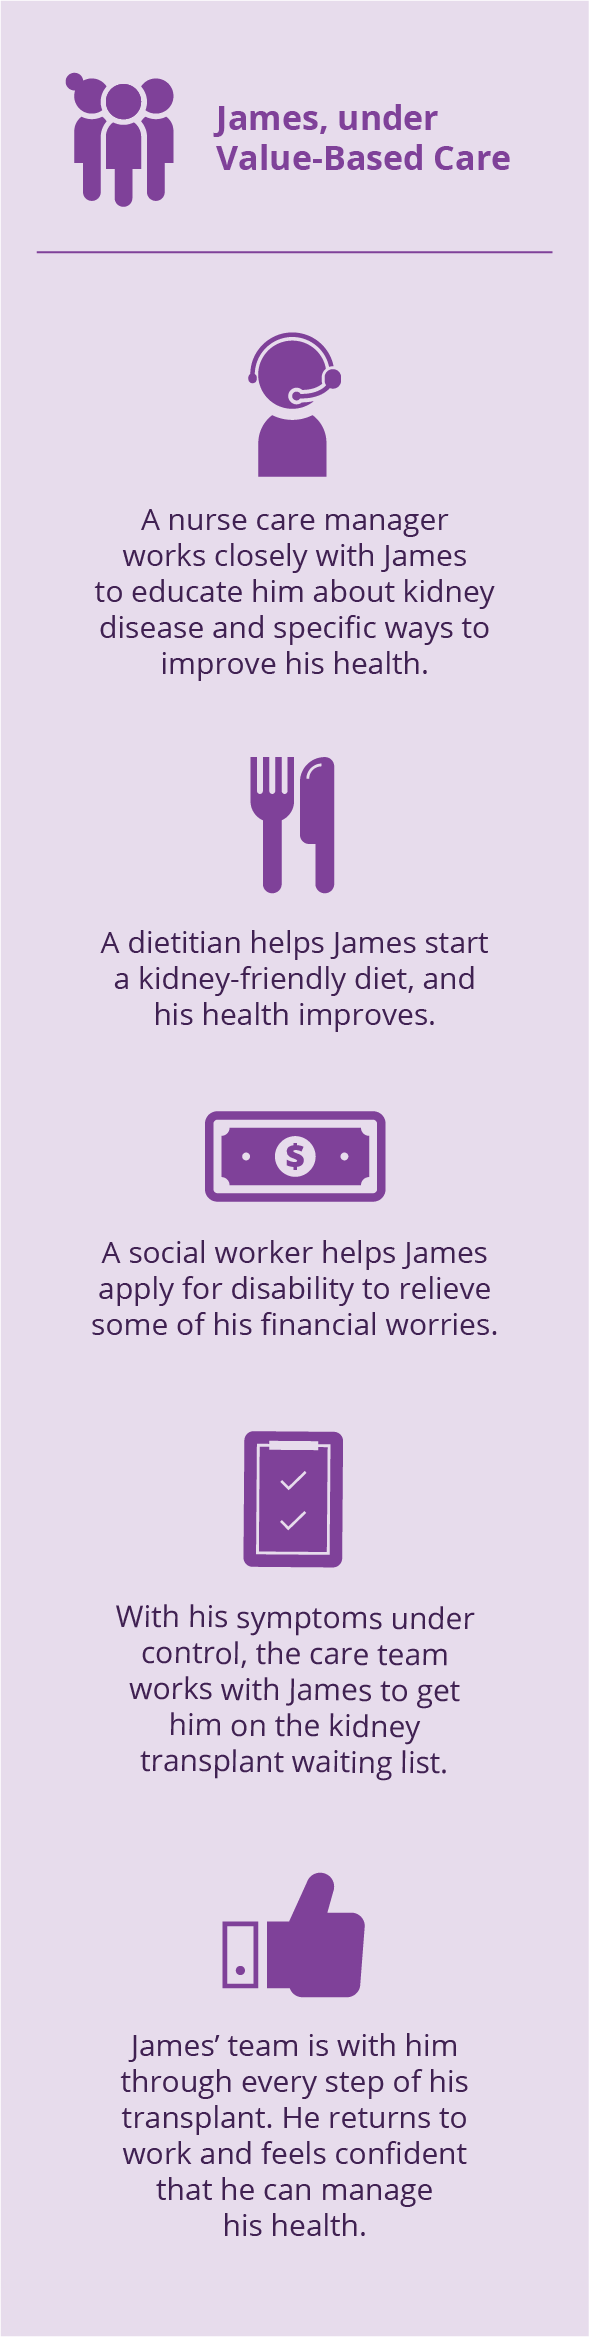 James under Value-based care Infographic Mobile